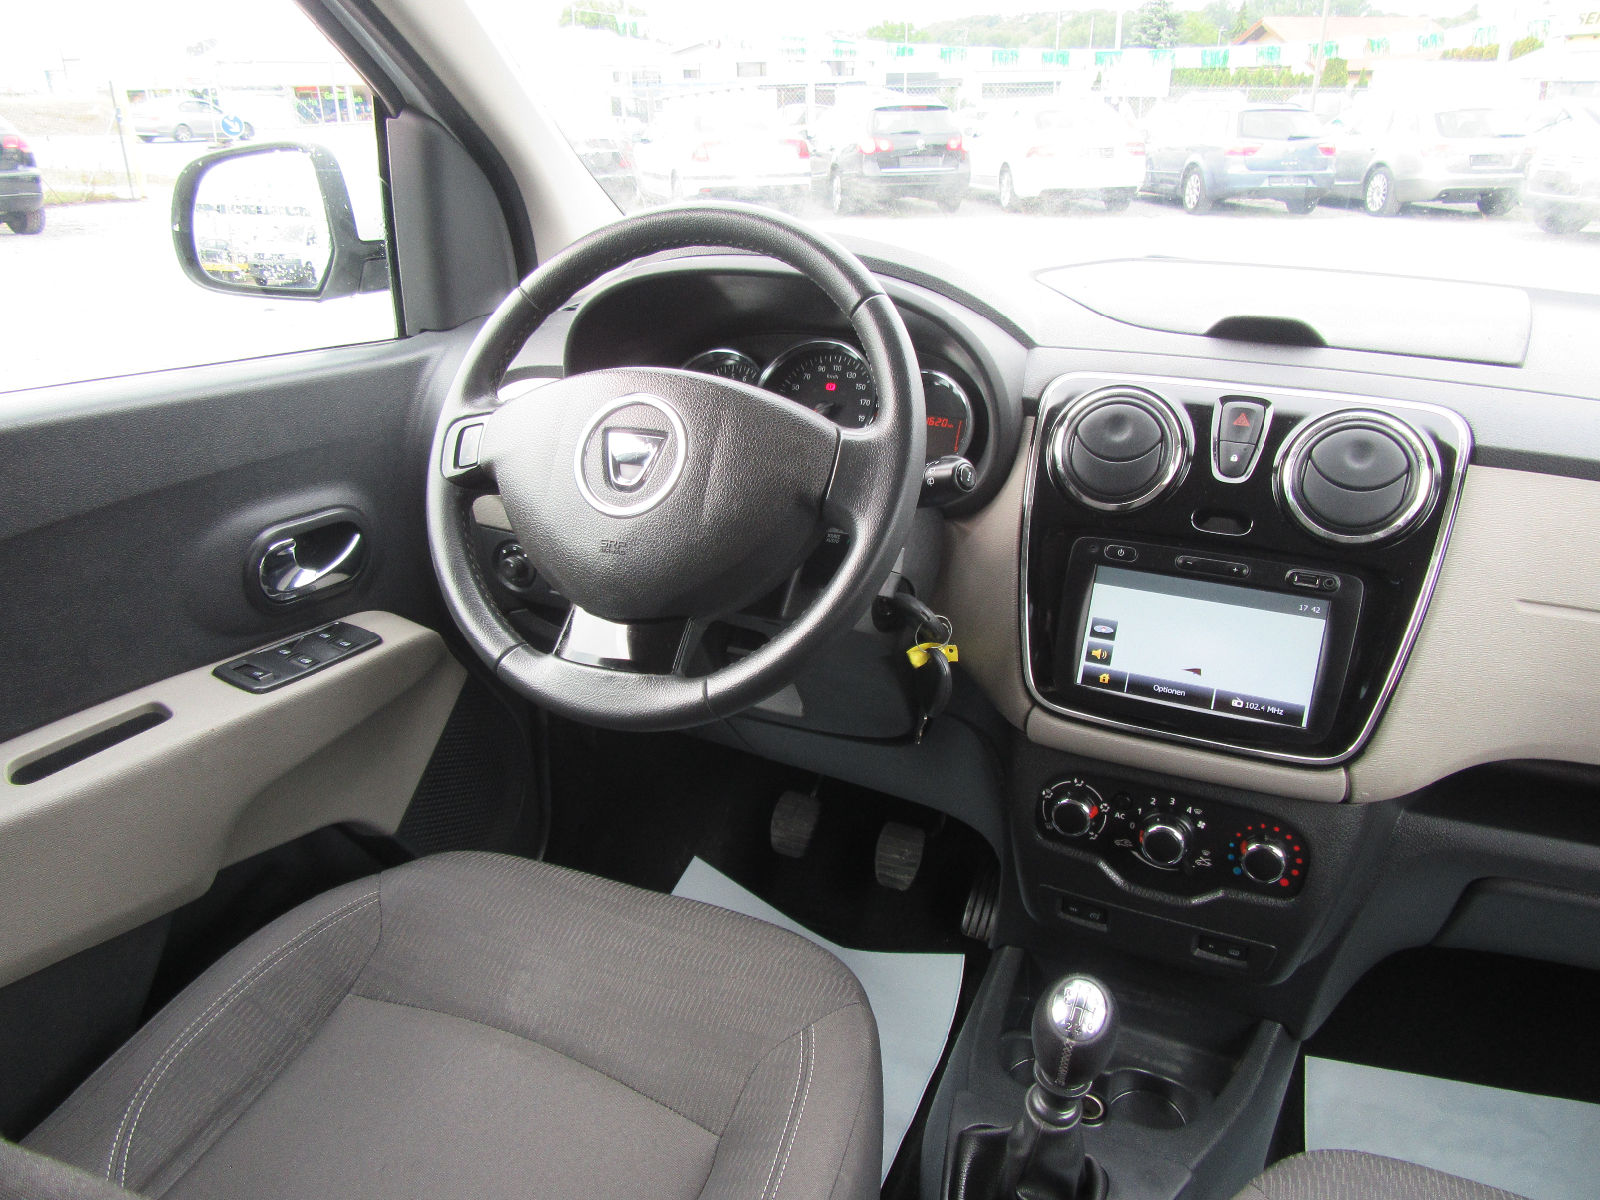 DACIA LODGY (06/2012) - WHITE - lieu: